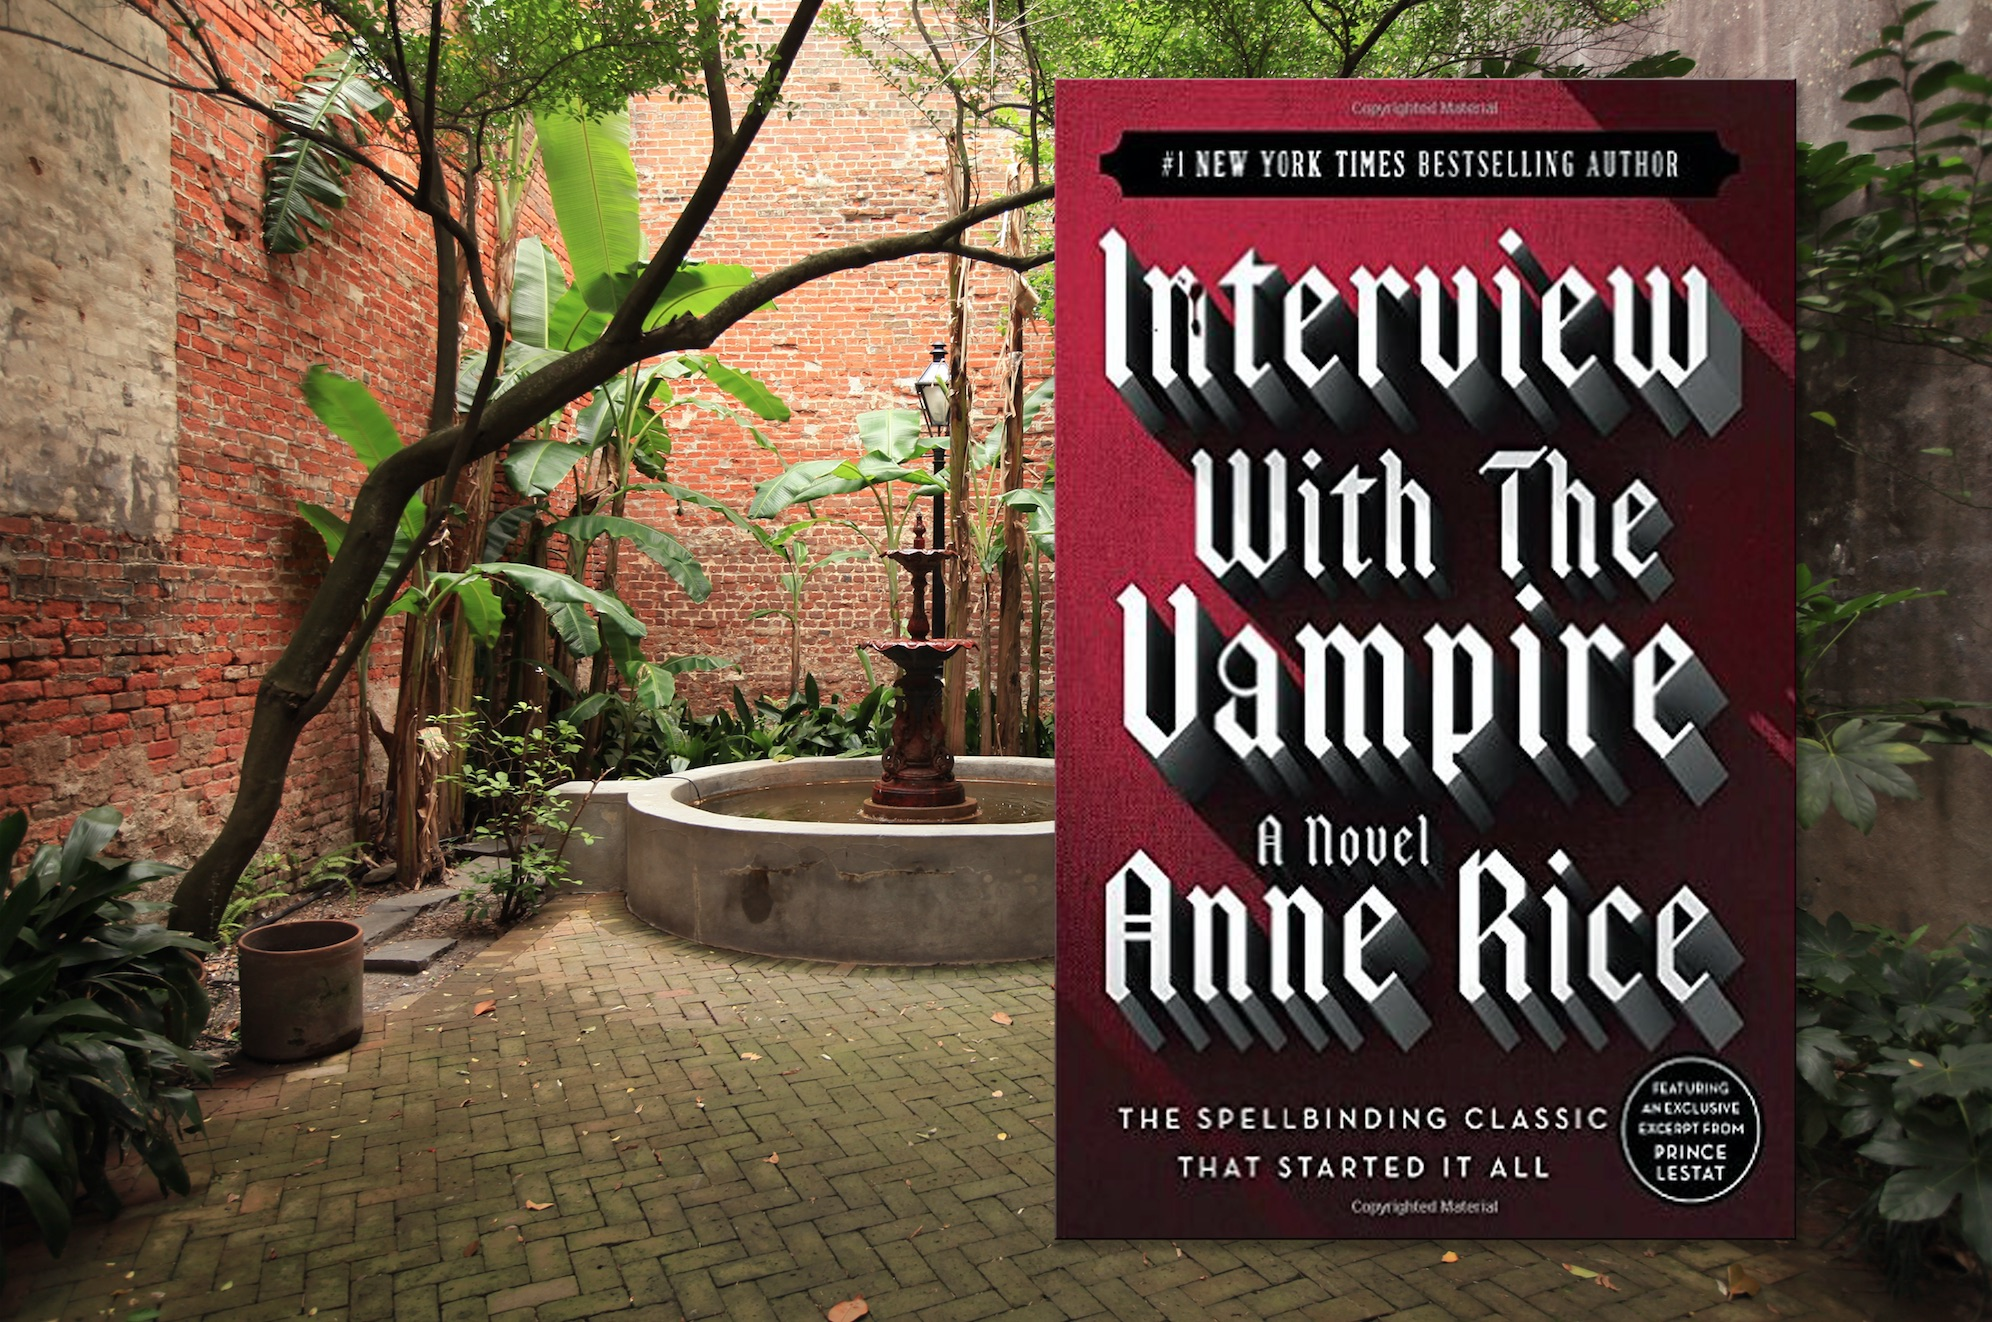 10 lower res interview with the vampire.jpg